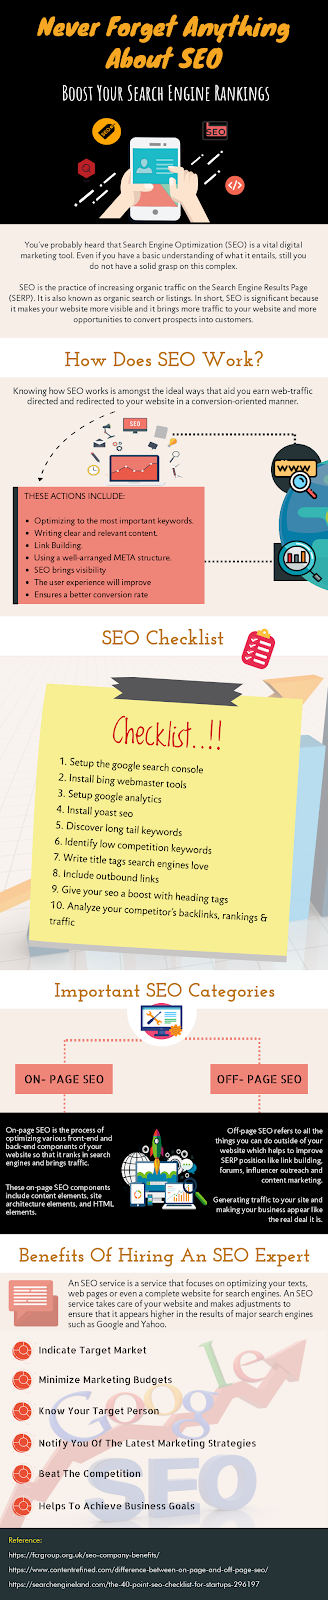 how does seo work 2019 - Inforgraphic by GlamySeo